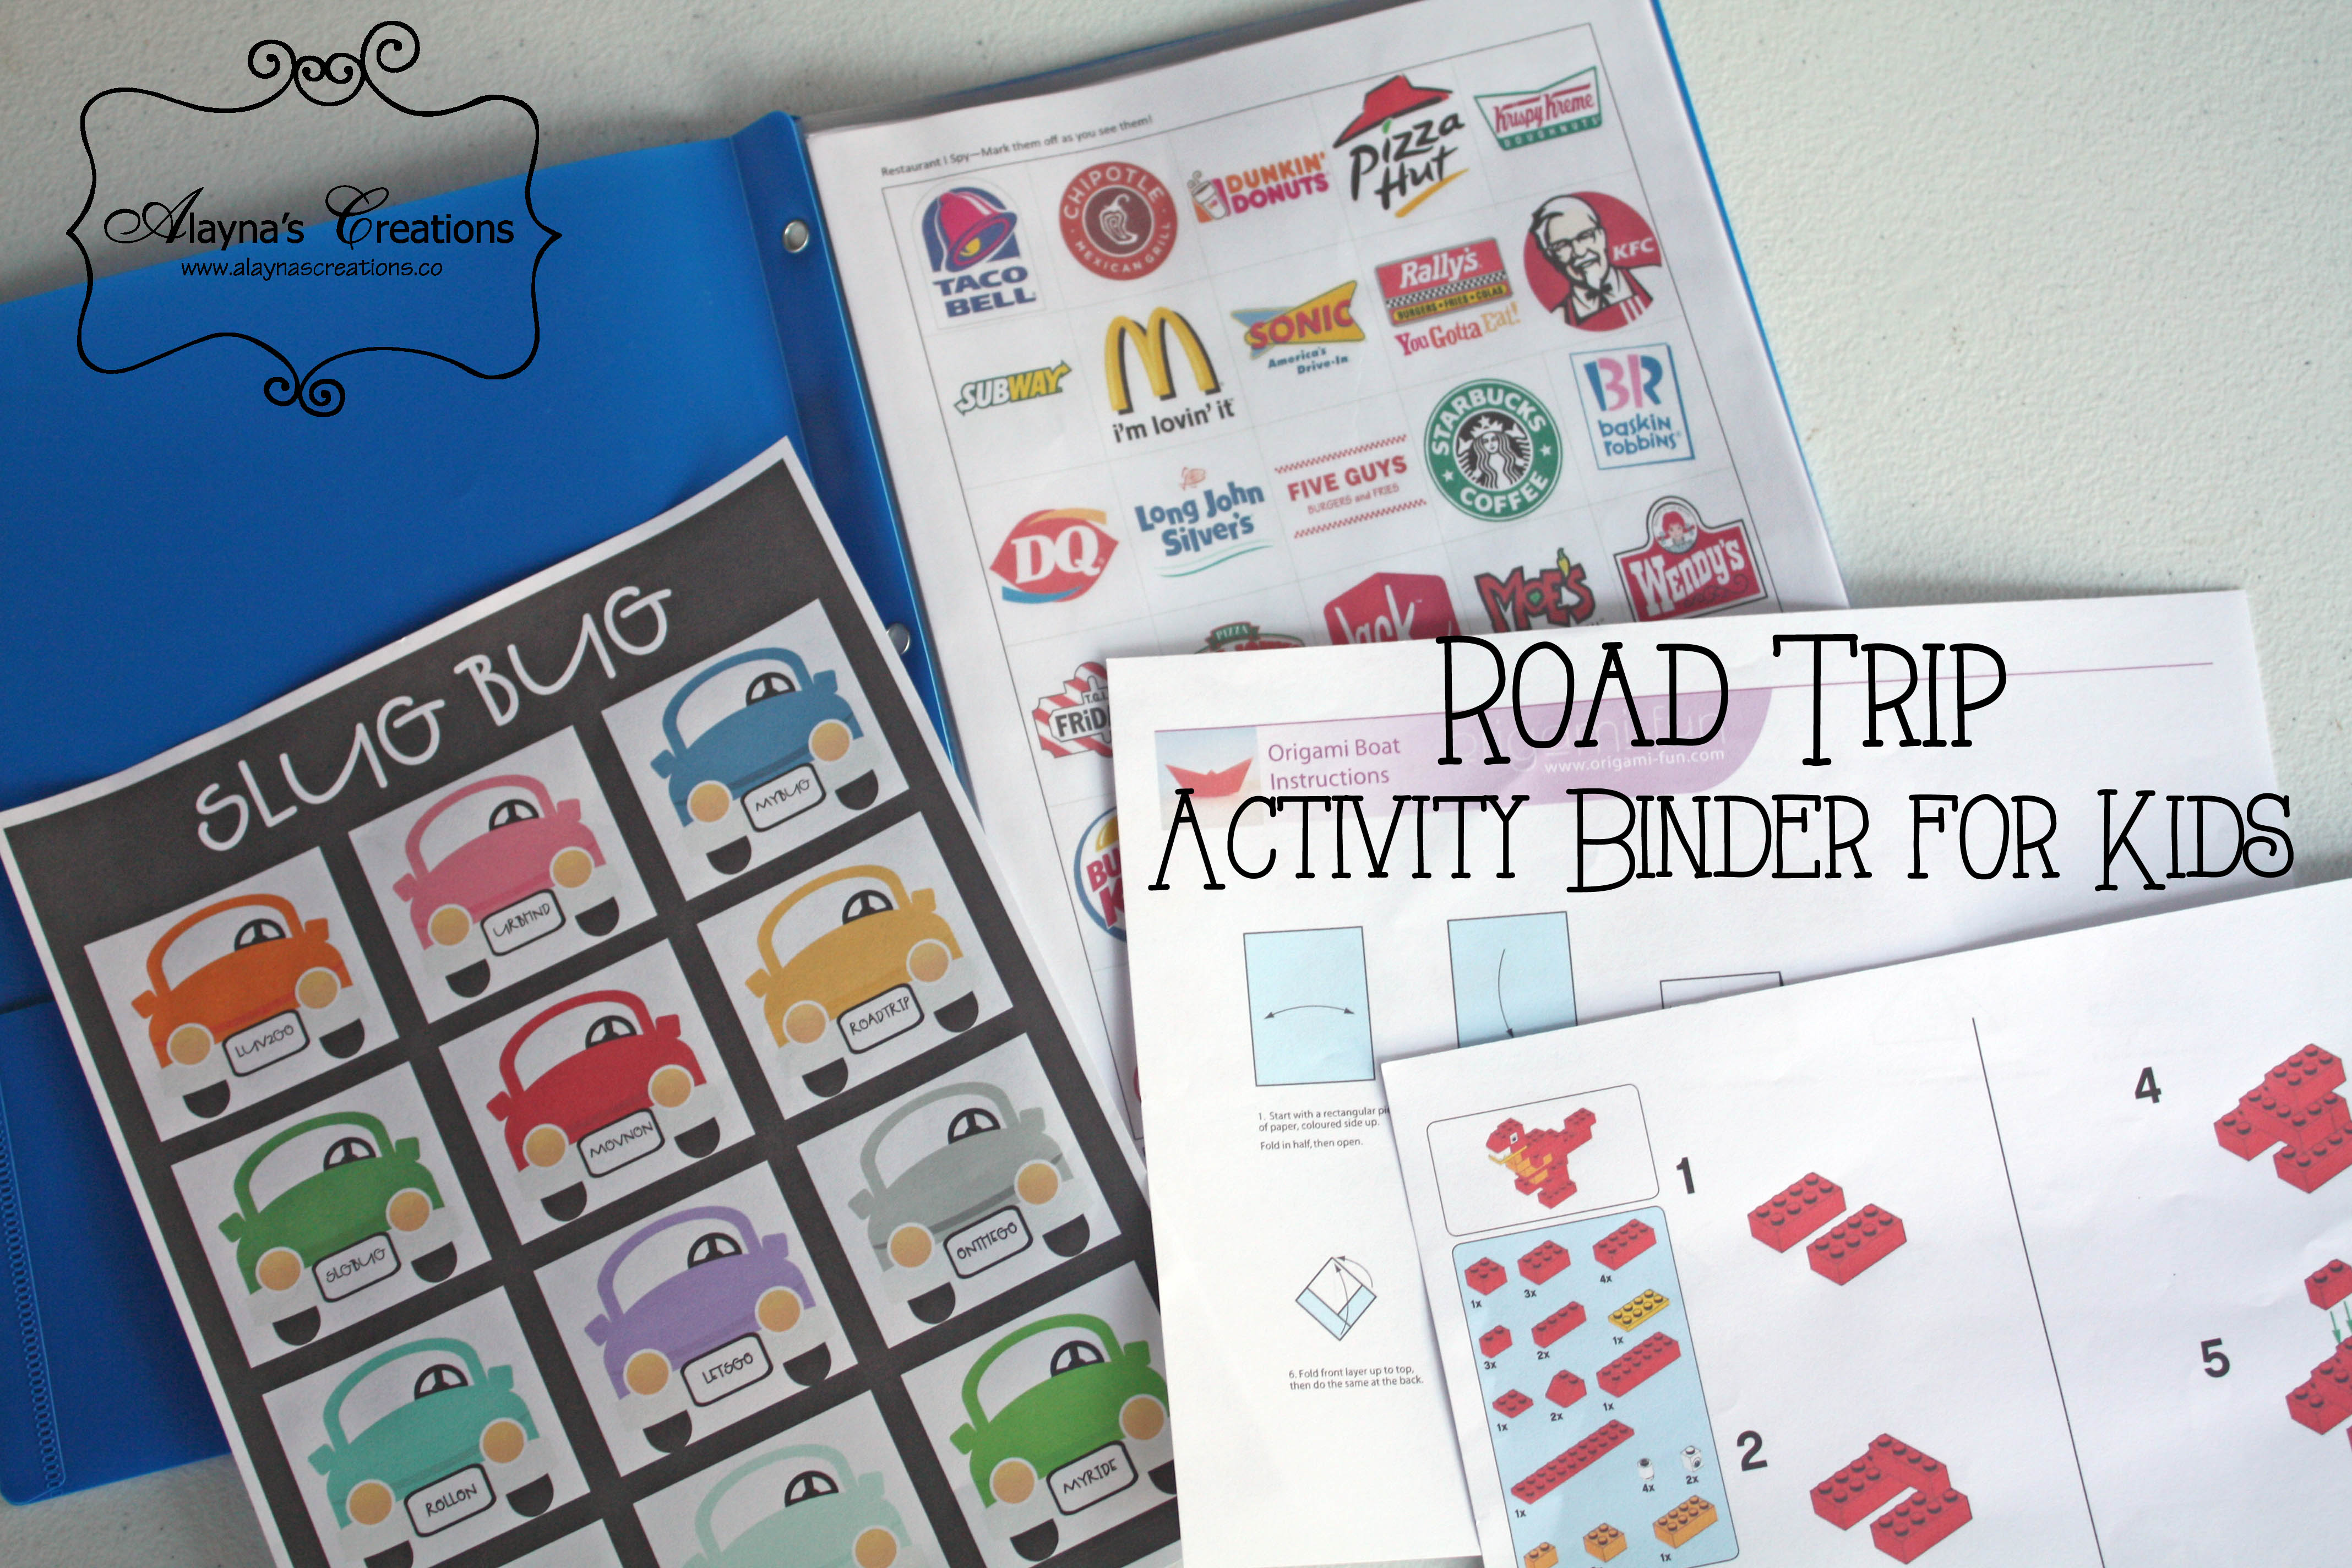 Road Trips: Travel Activity Binder for Kids - DIY home decor and crafts